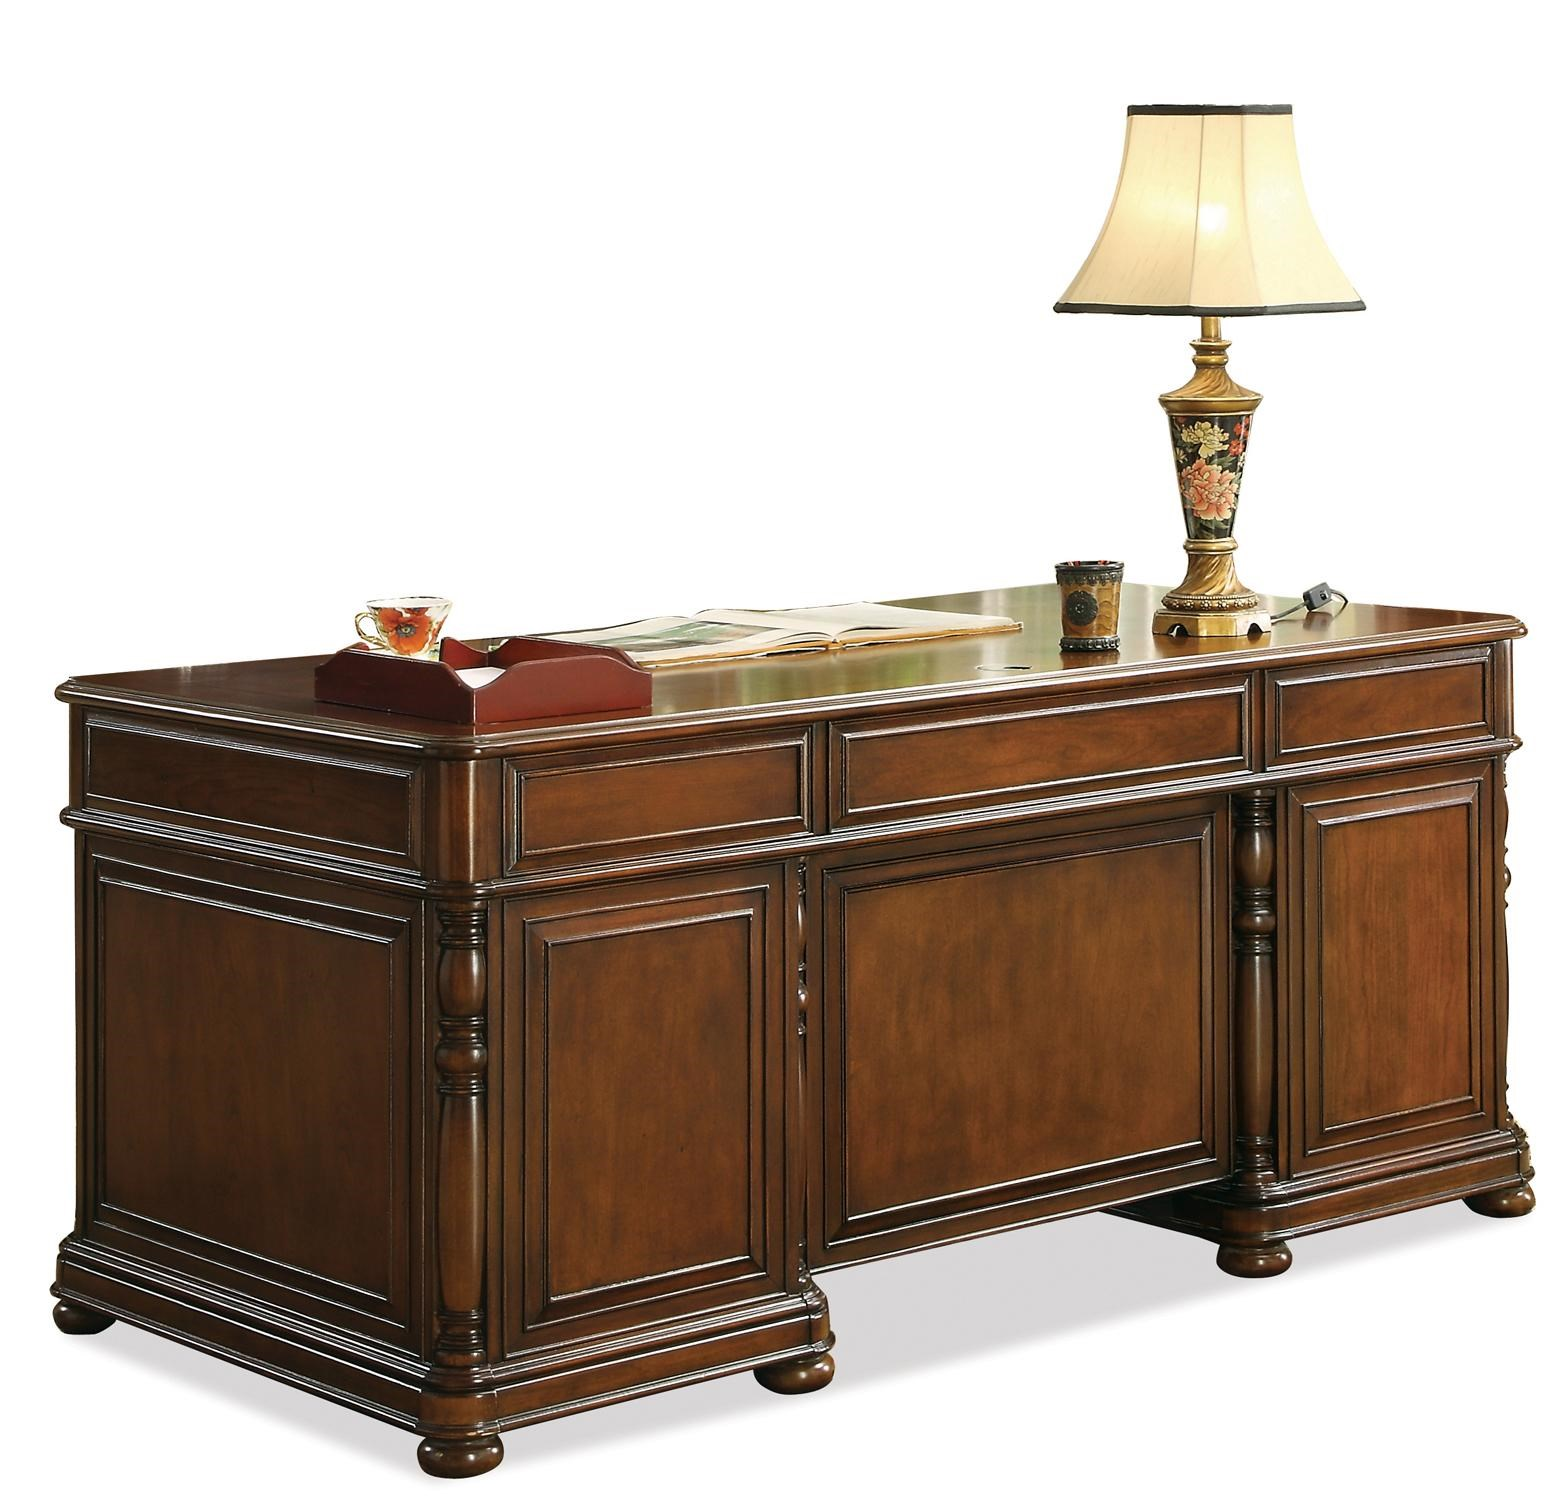 Riverside Furniture Bristol Court Cognac Cherry Finished